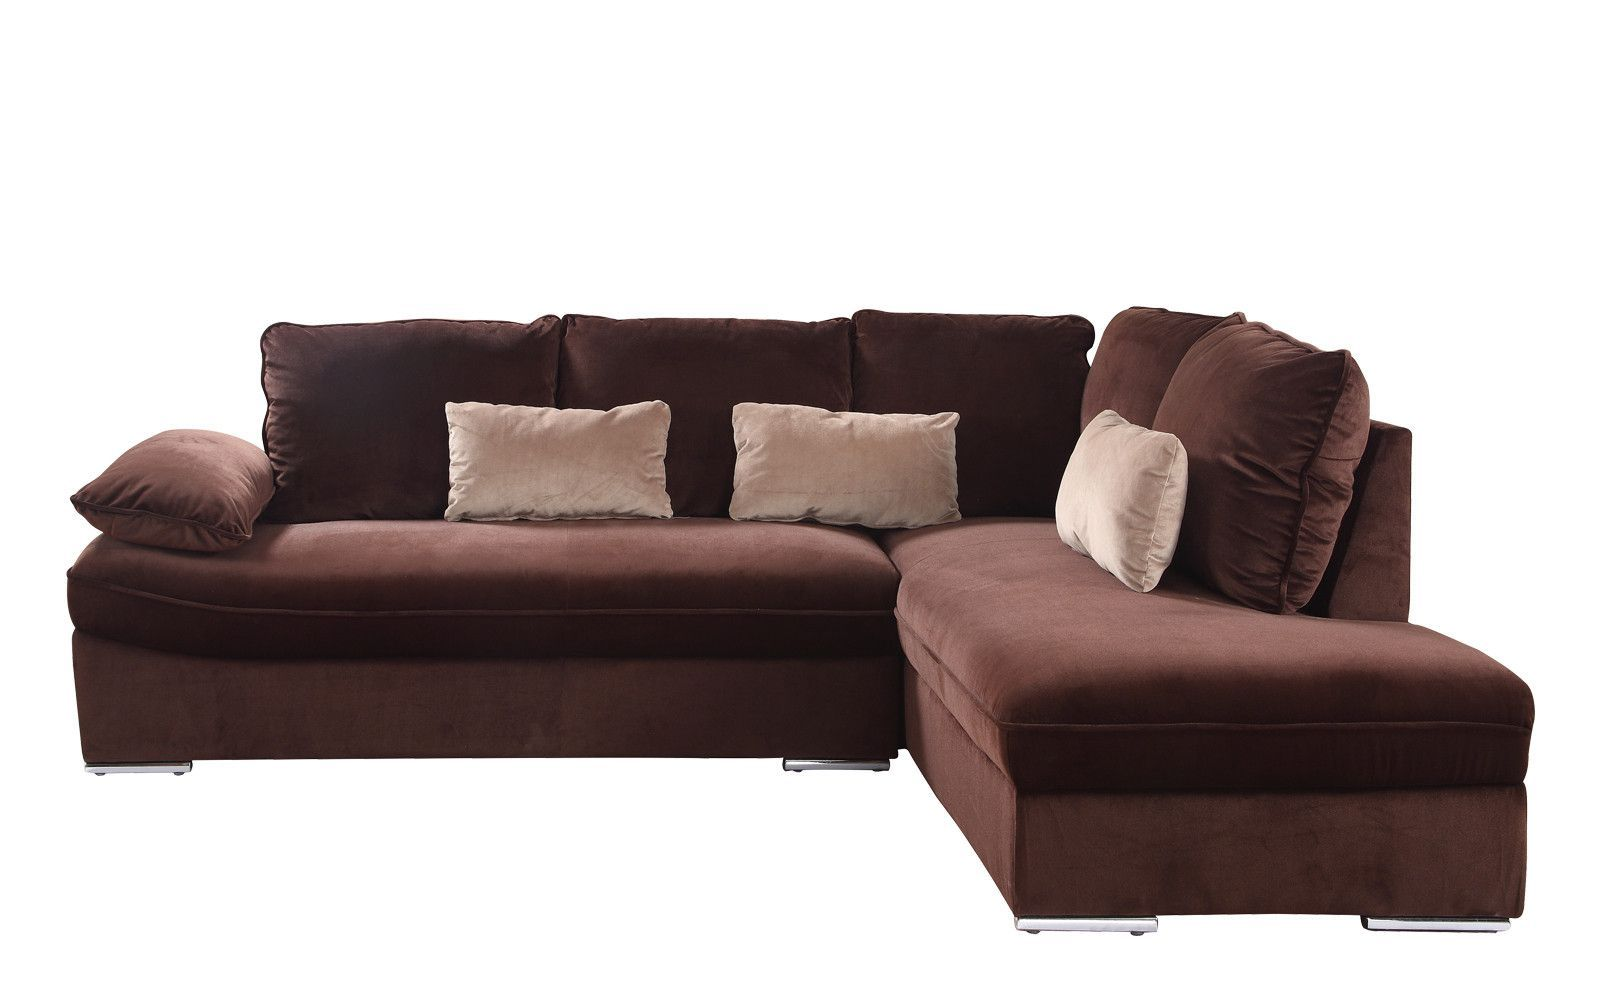 Sensational Granada Classic Brush Microfiber Sectional Products Theyellowbook Wood Chair Design Ideas Theyellowbookinfo